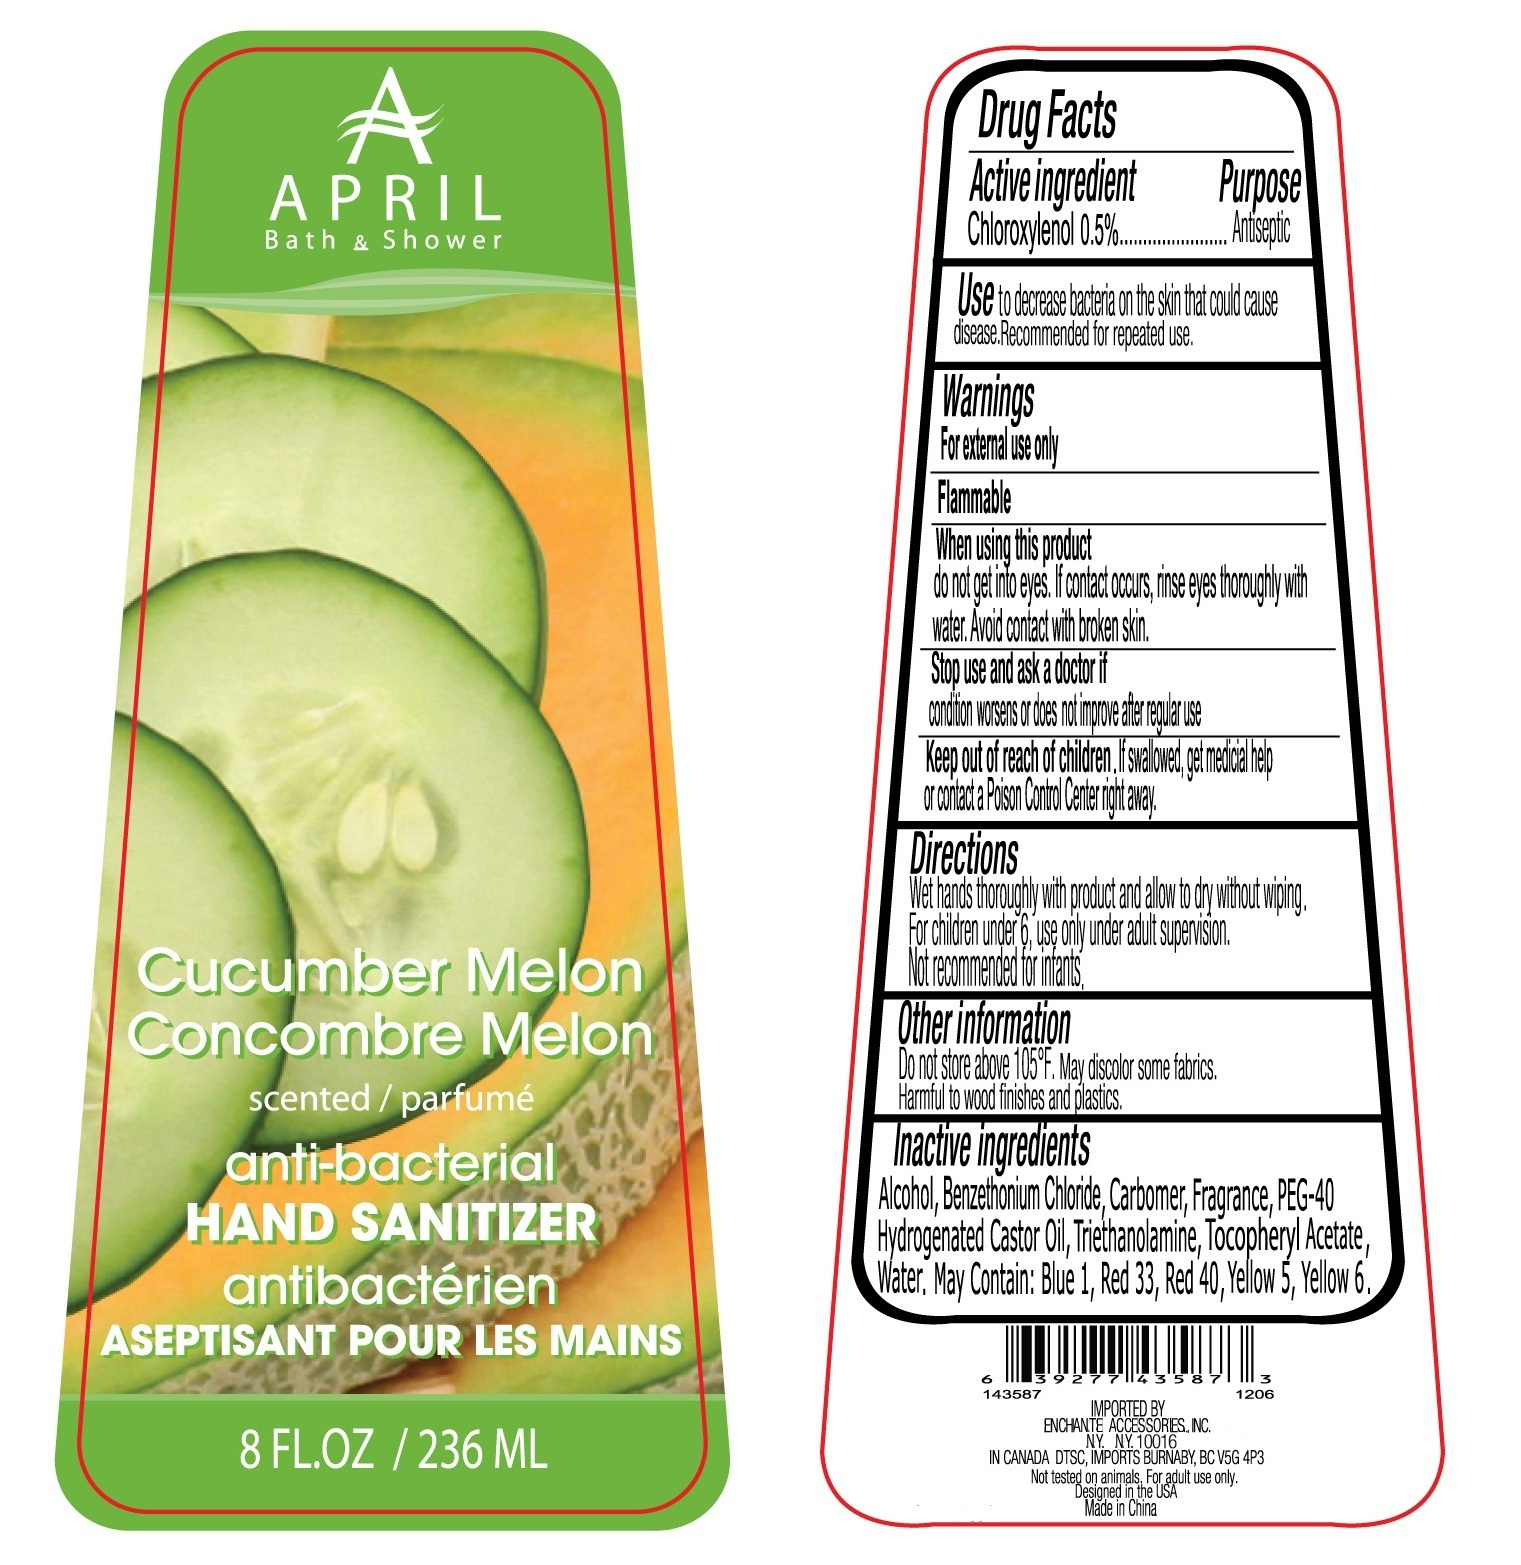 April Bath And Shower Cucumber Melon Scented Hand Sanitizer Anti-bacterial (Chloroxylenol) Liquid [Enchante Accessories Inc. ]